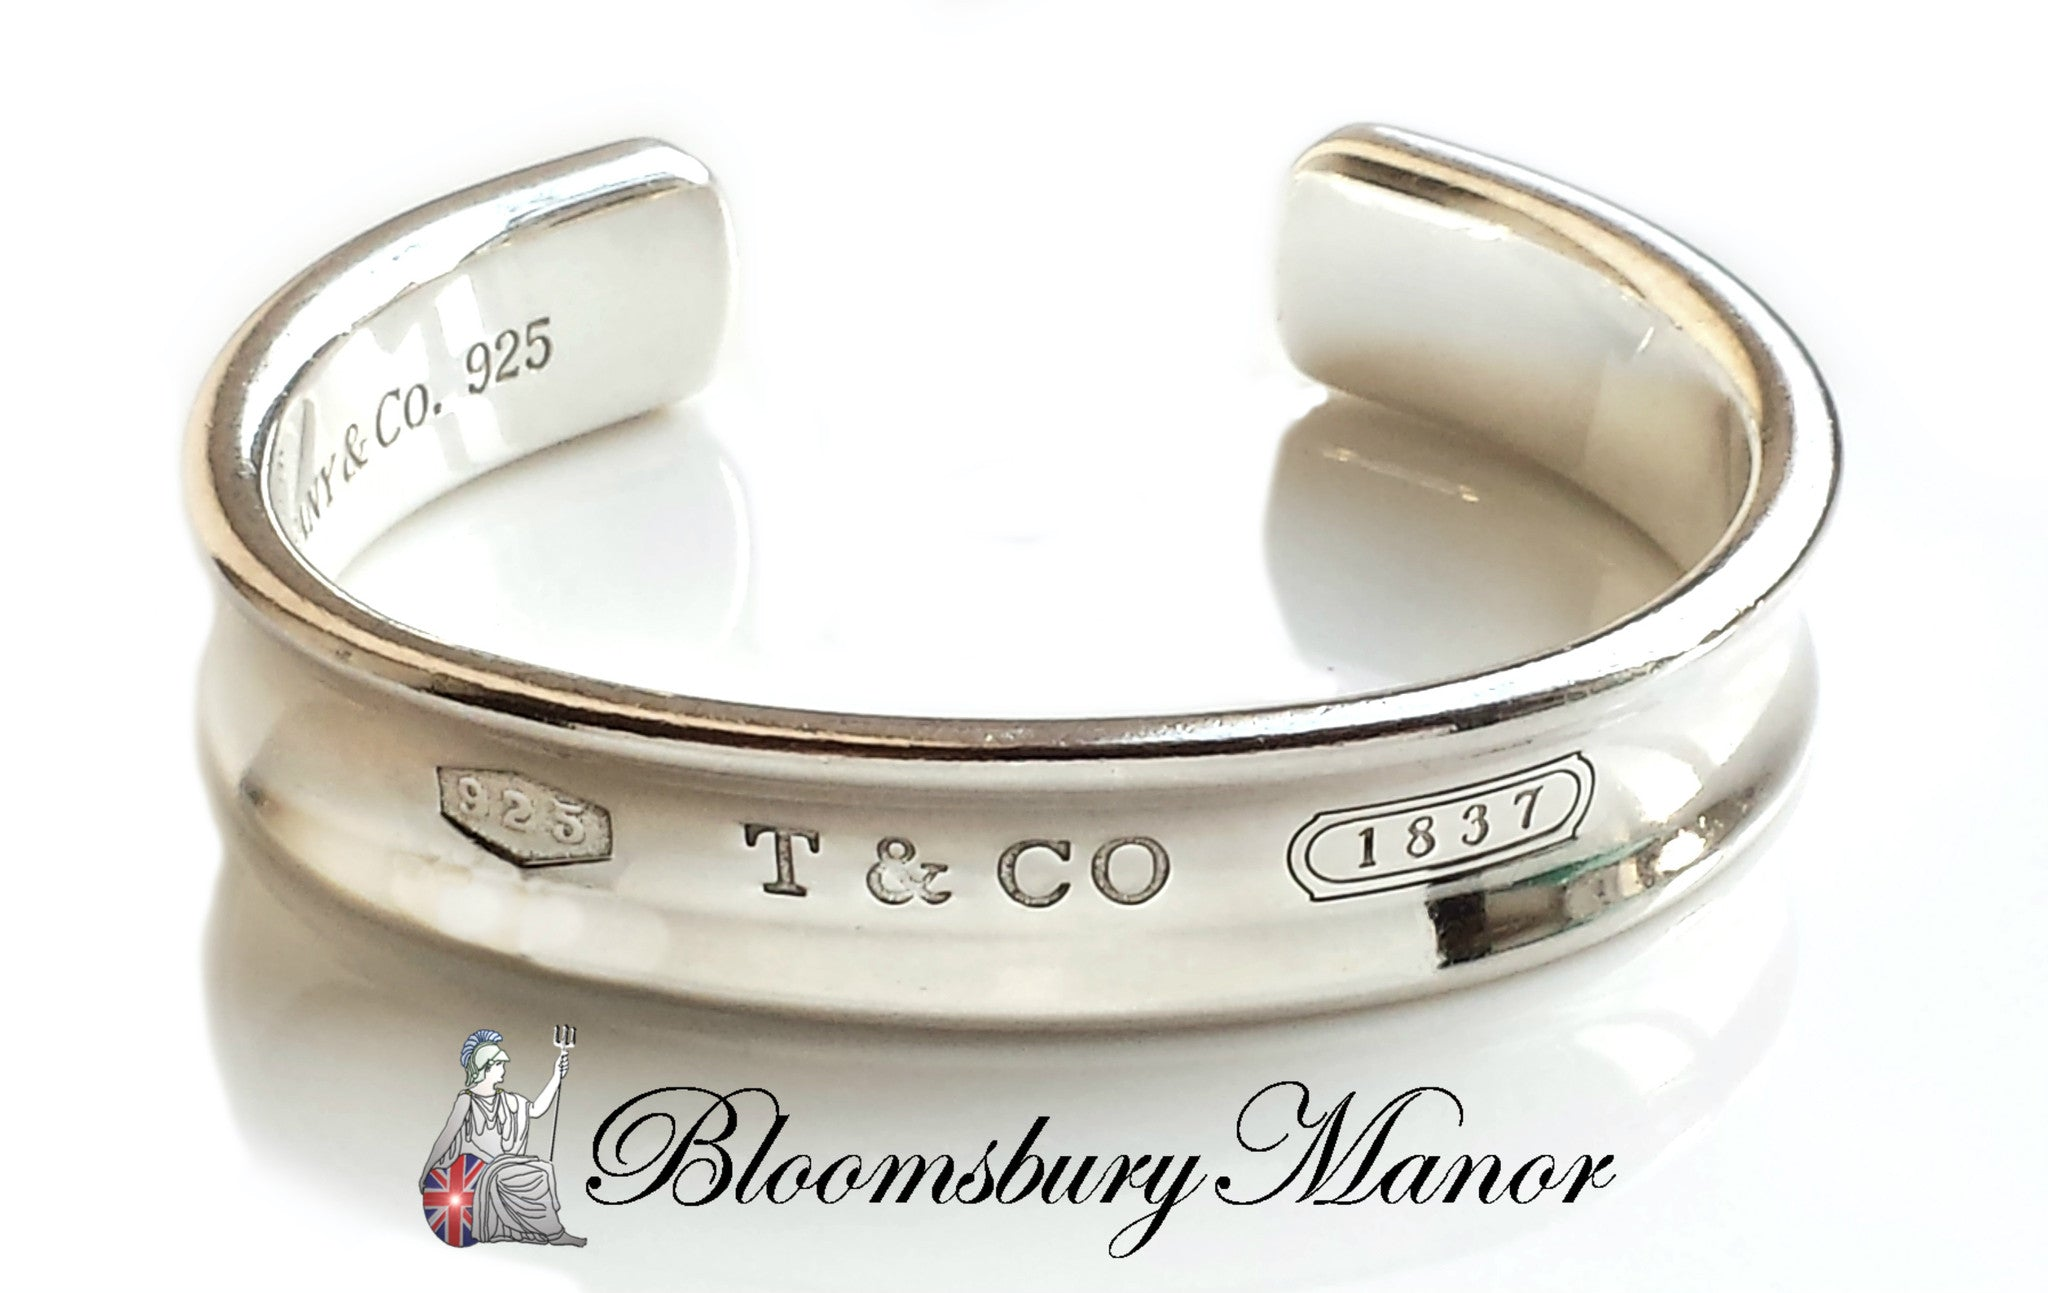 983859ec6 Tiffany & Co 1837 Sterling Silver Bangle Bracelet Small + Pouch -  Bloomsbury Manor Ltd